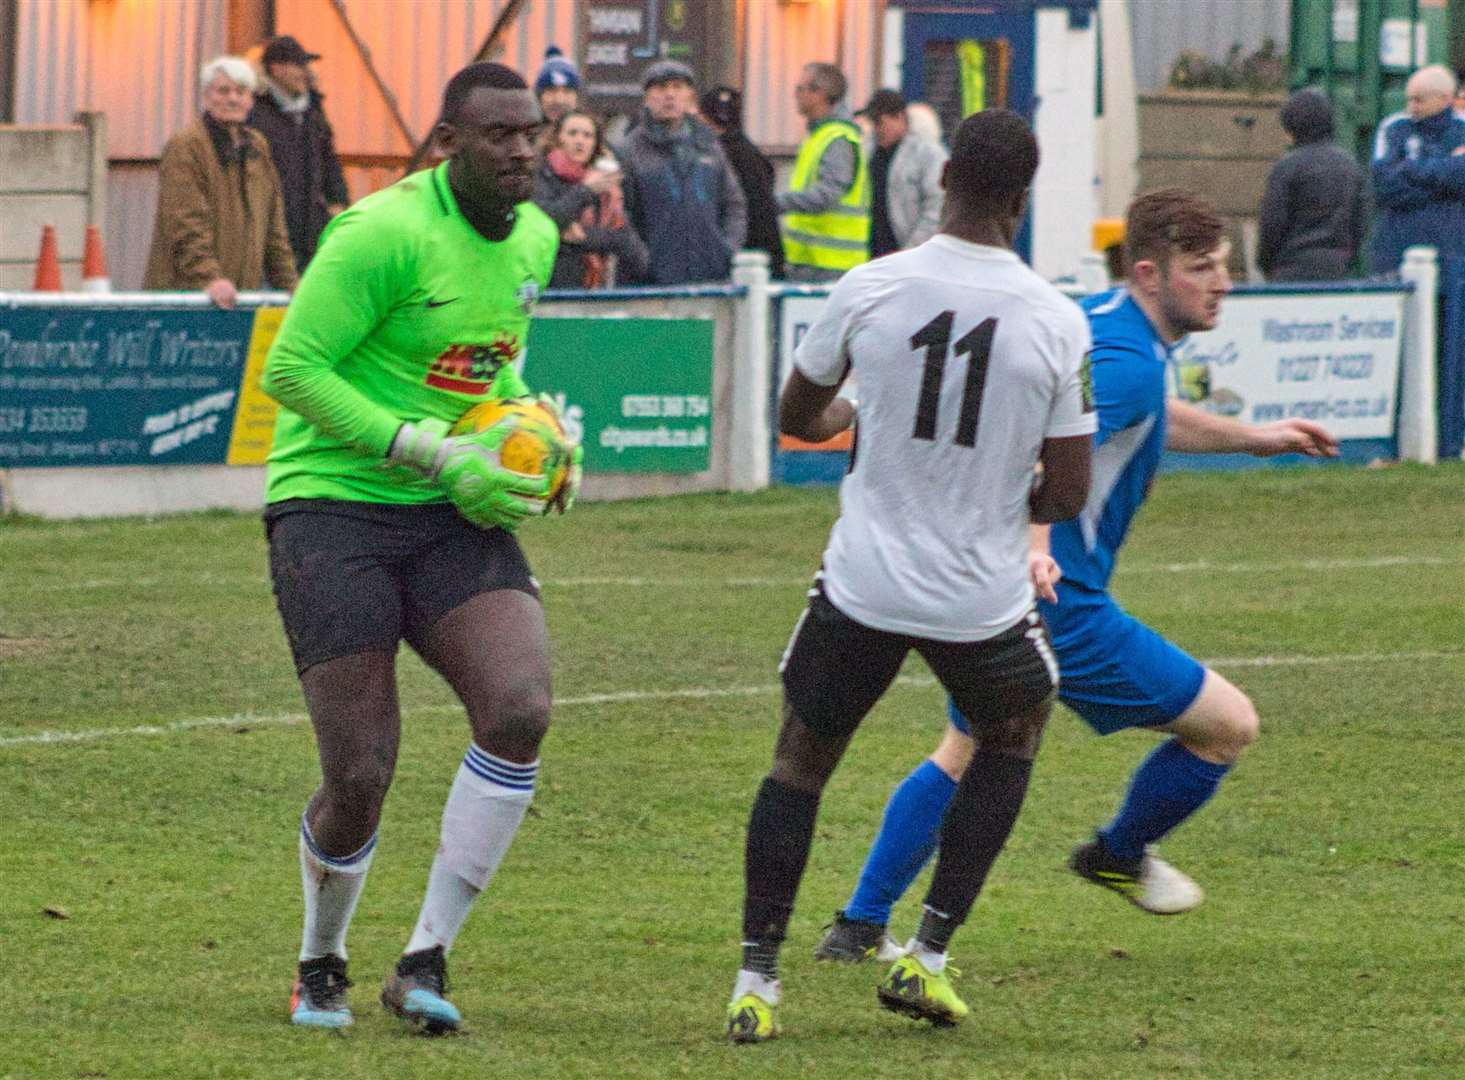 George Kamurasi in action for Herne Bay